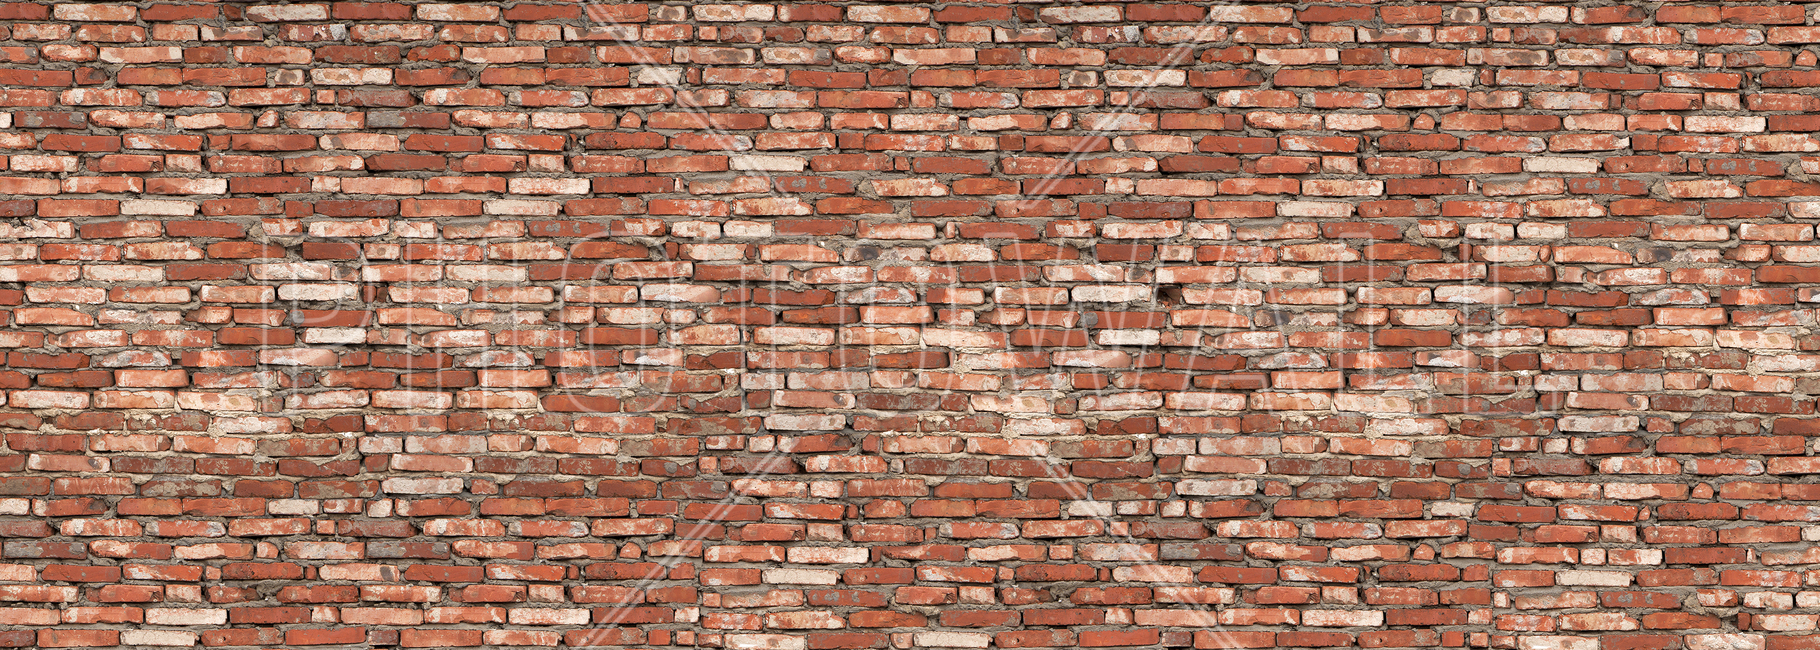 Old Brick Wall Red